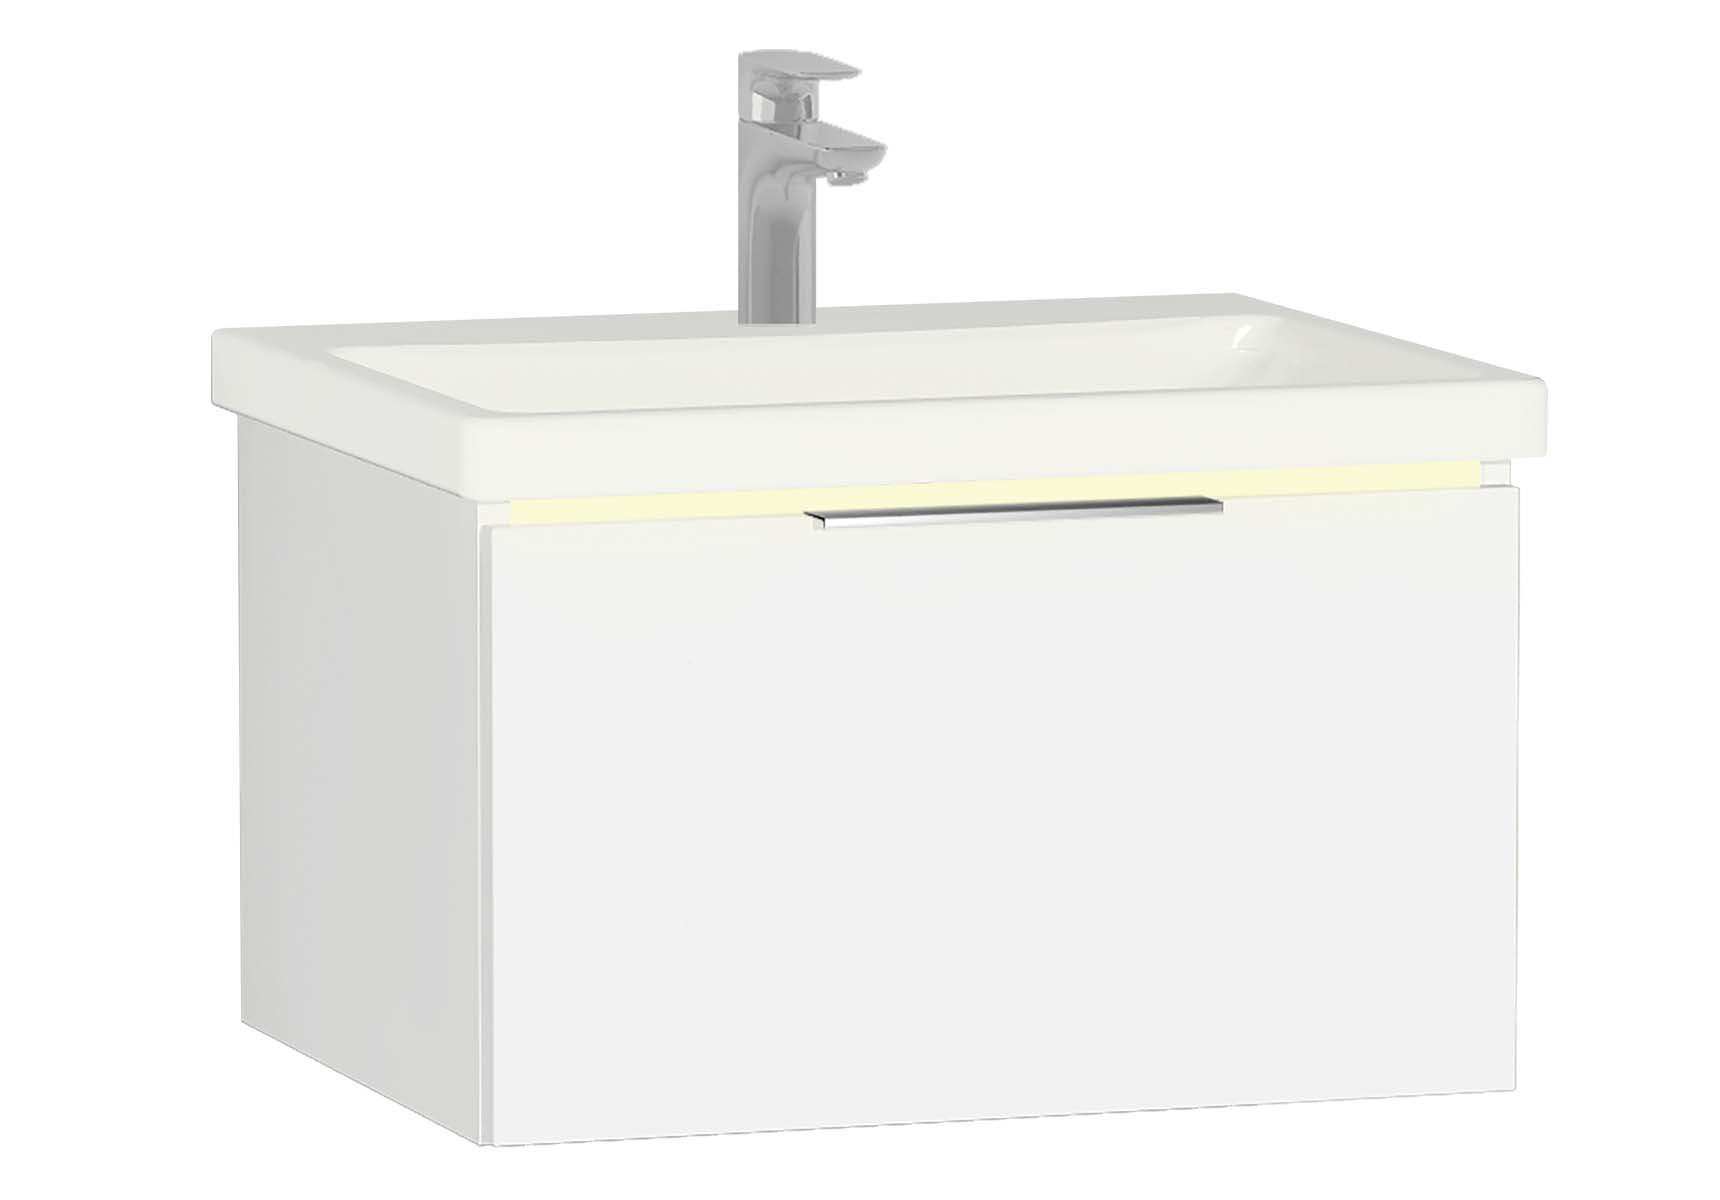 Central Washbasin Unit with 1 drawer, 60 cm, White High Gloss, Ceramic Washbasin, Led